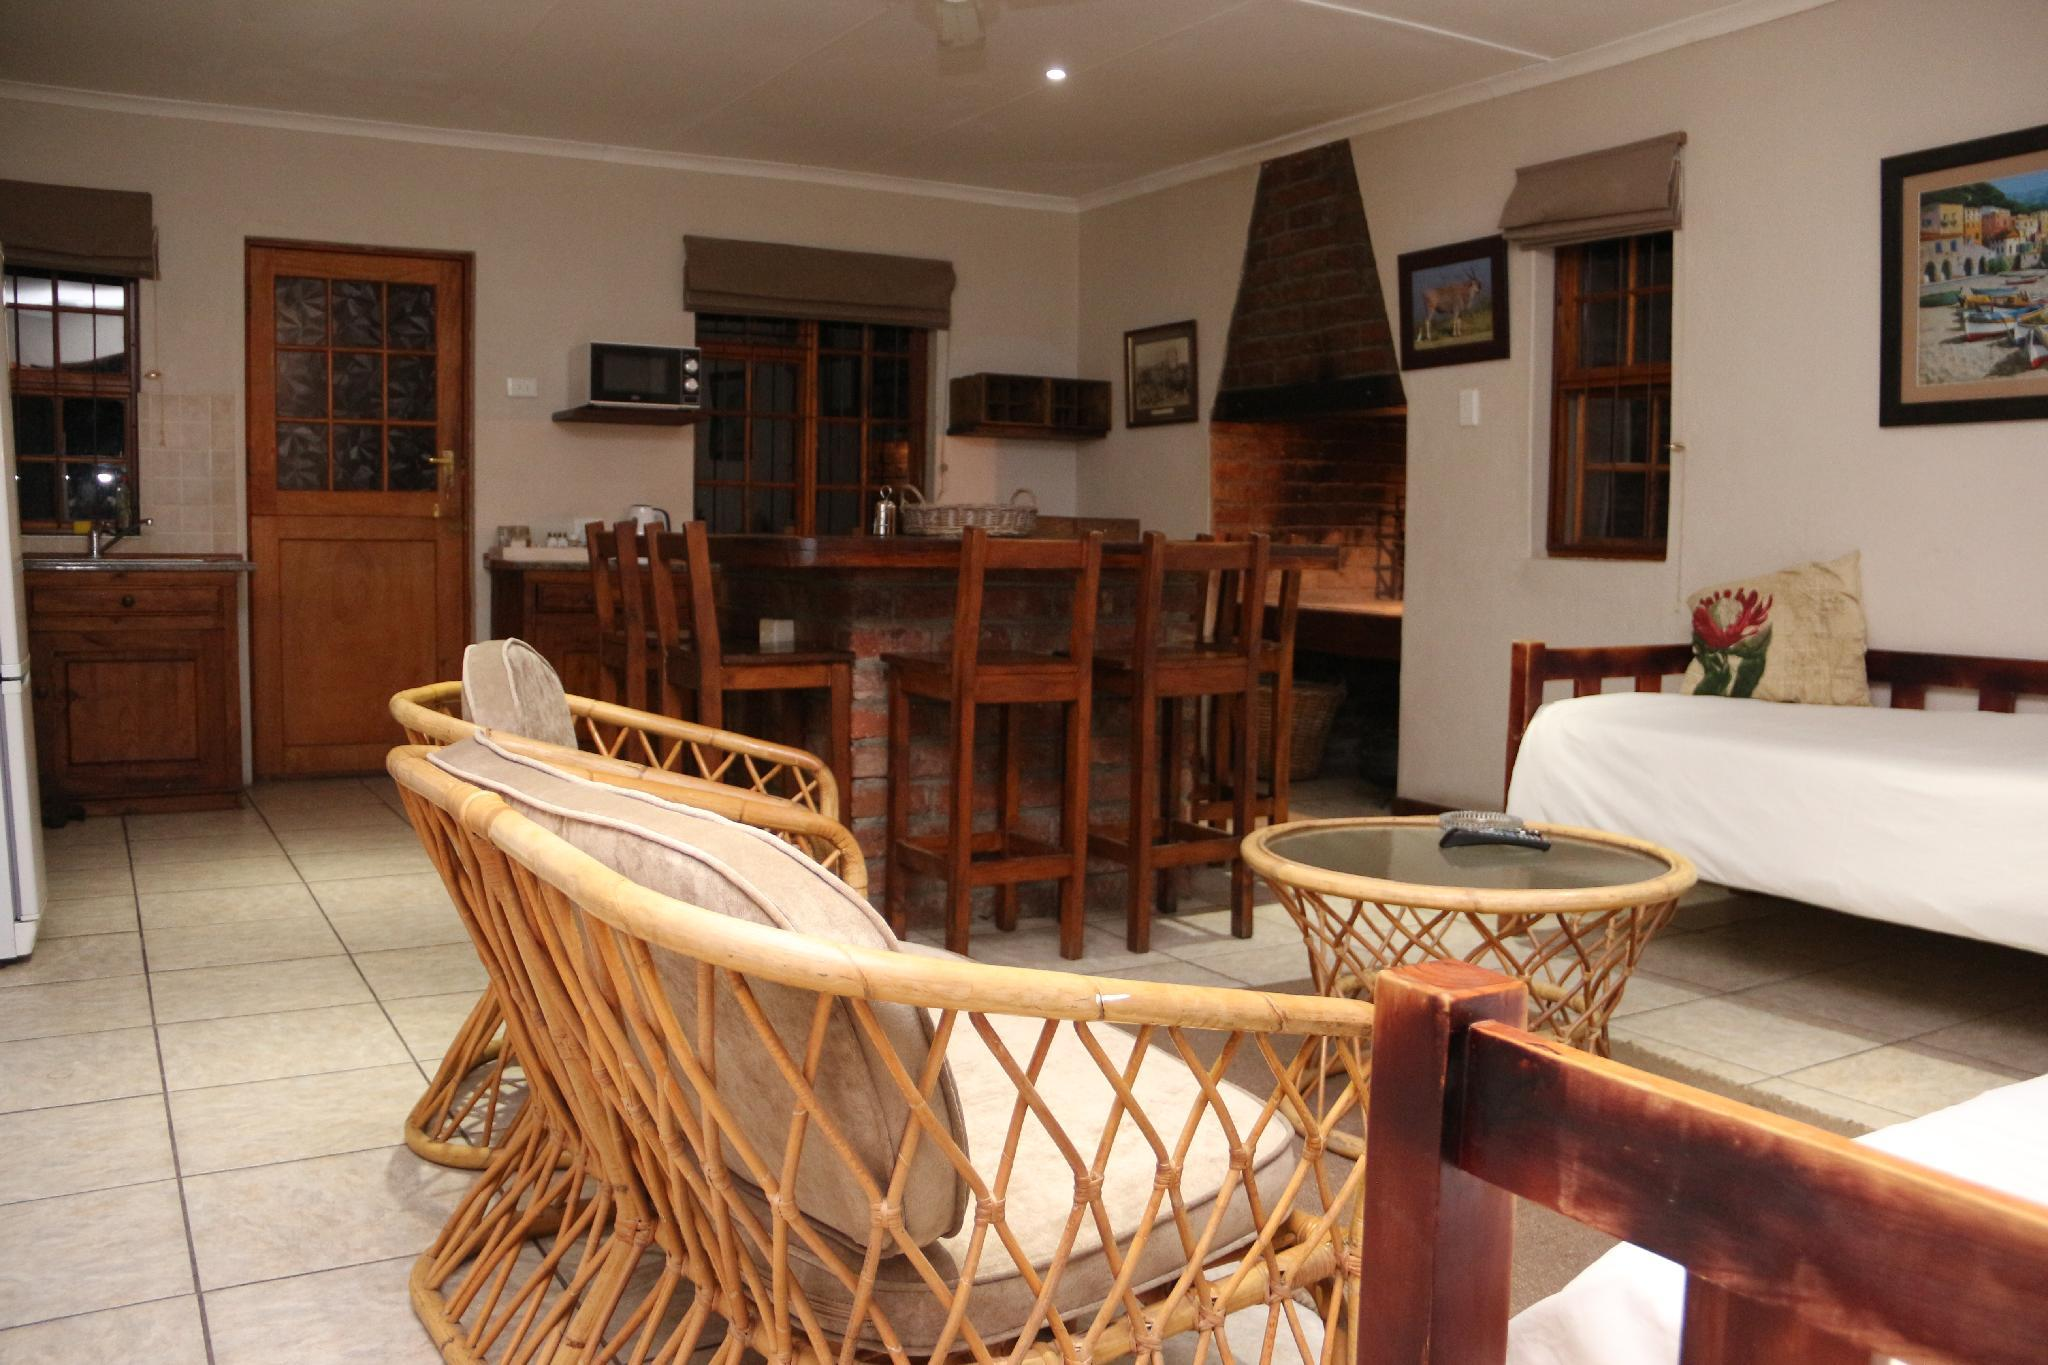 Eland S/Catering Cottage - UNIT PRICE